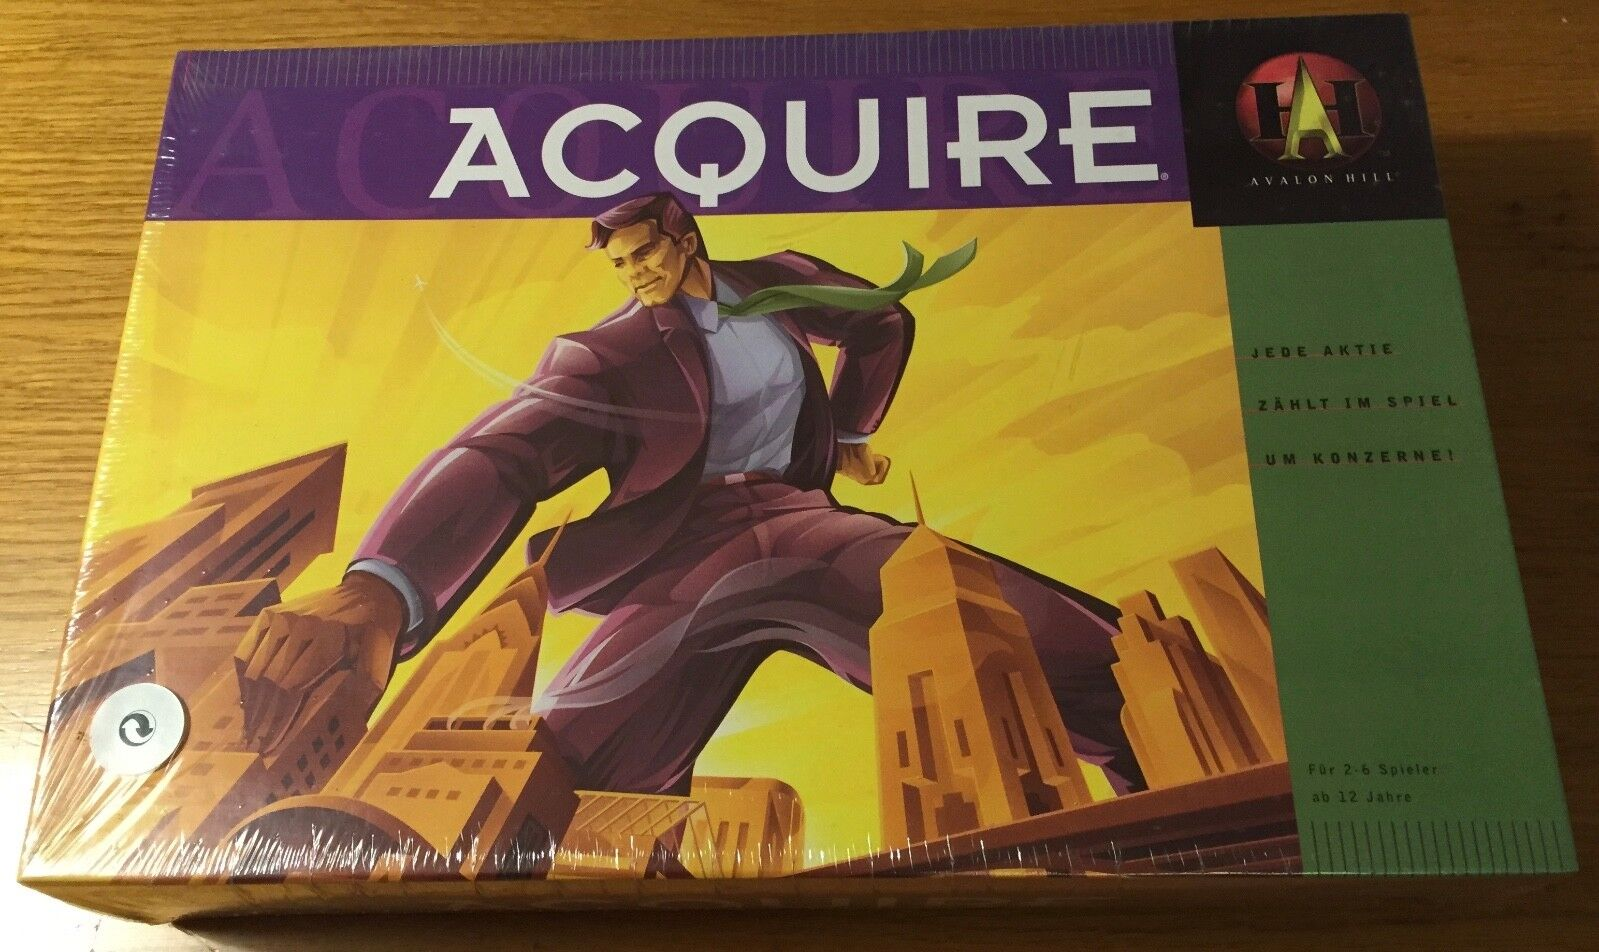 Acquire - Avalon Hill Hasbro 1999 - Sigillato Sealed Shrinkwrapped